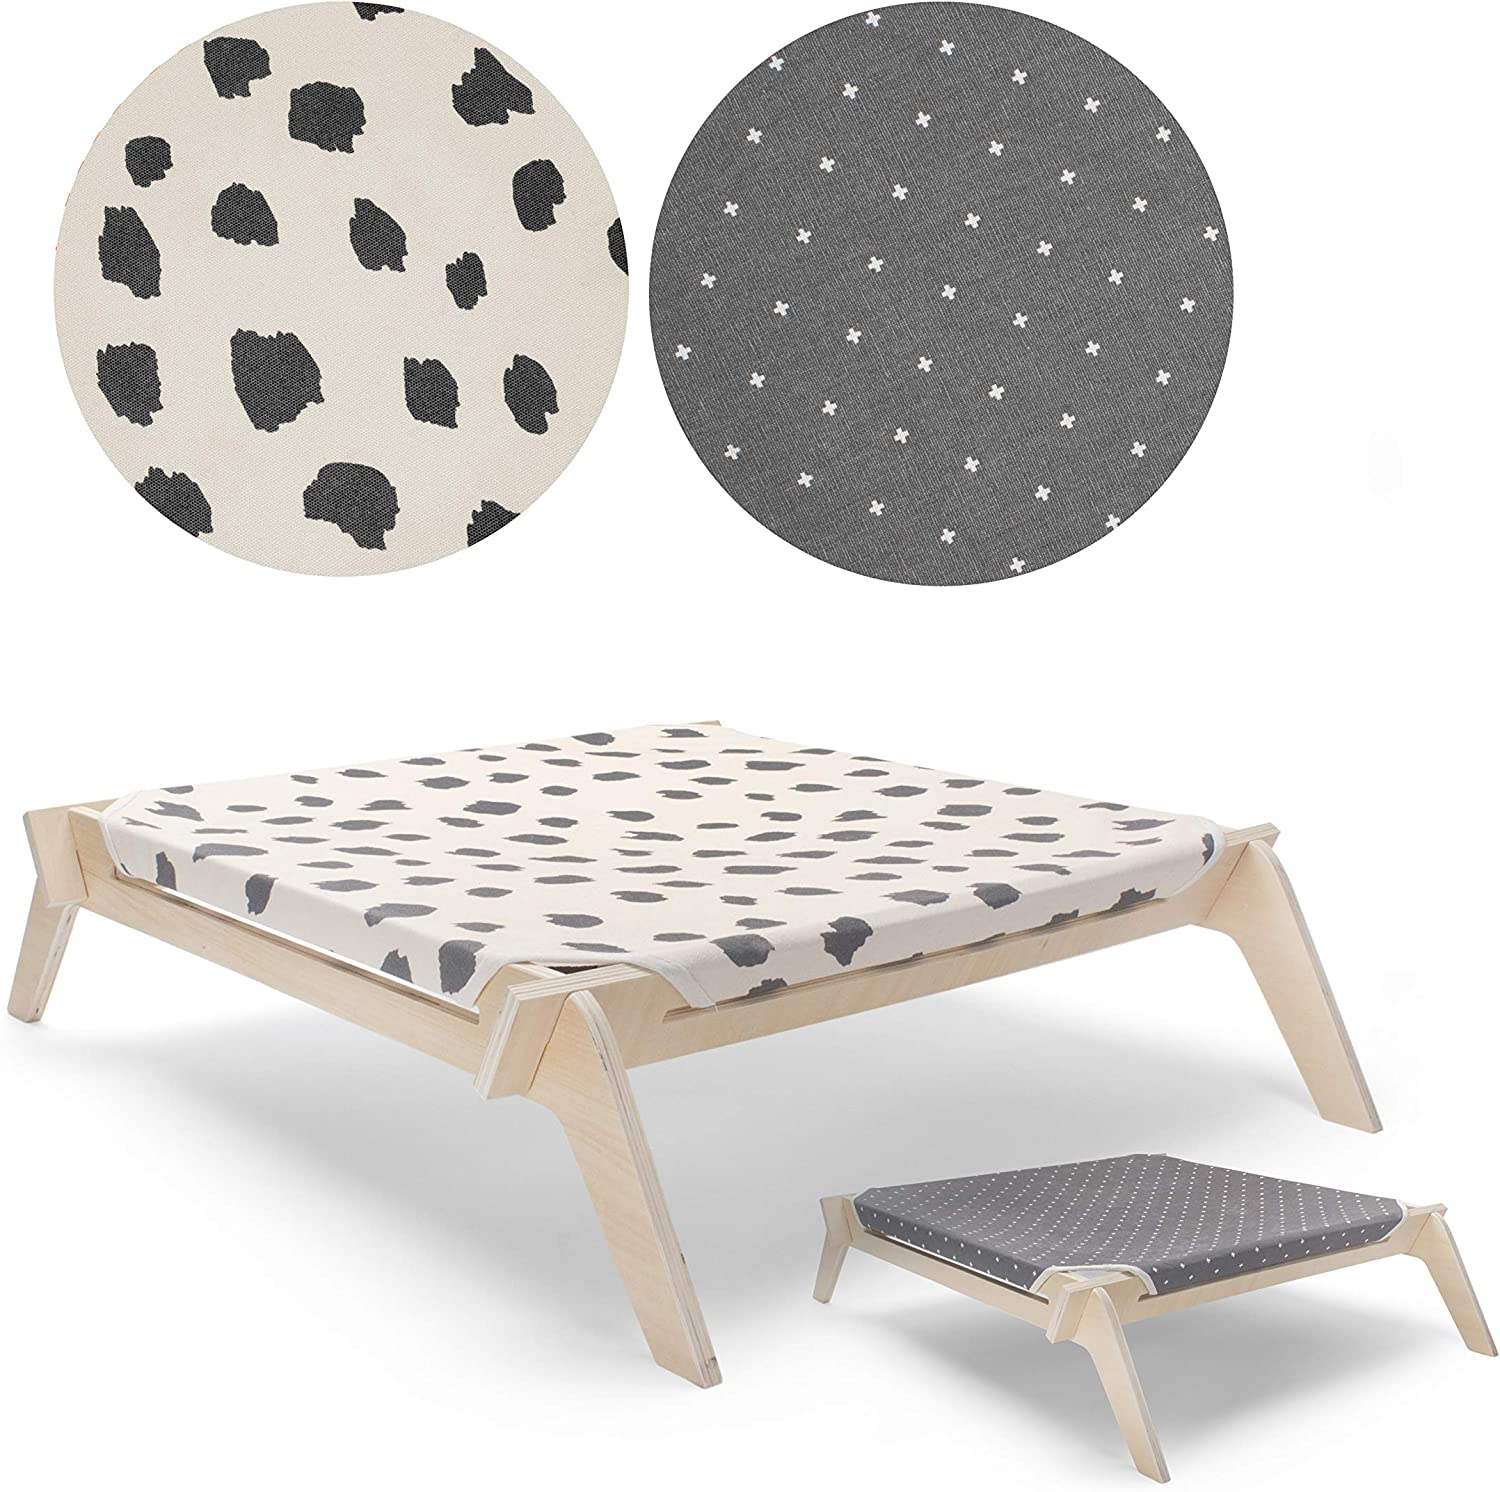 Primetime Petz Pet Lounge, Raised Indoor Pet Bed for Cats or Small Dogs, Reversible Fabric Hammock Neutral Paint Spots/GreyCrosses with Natural Frame